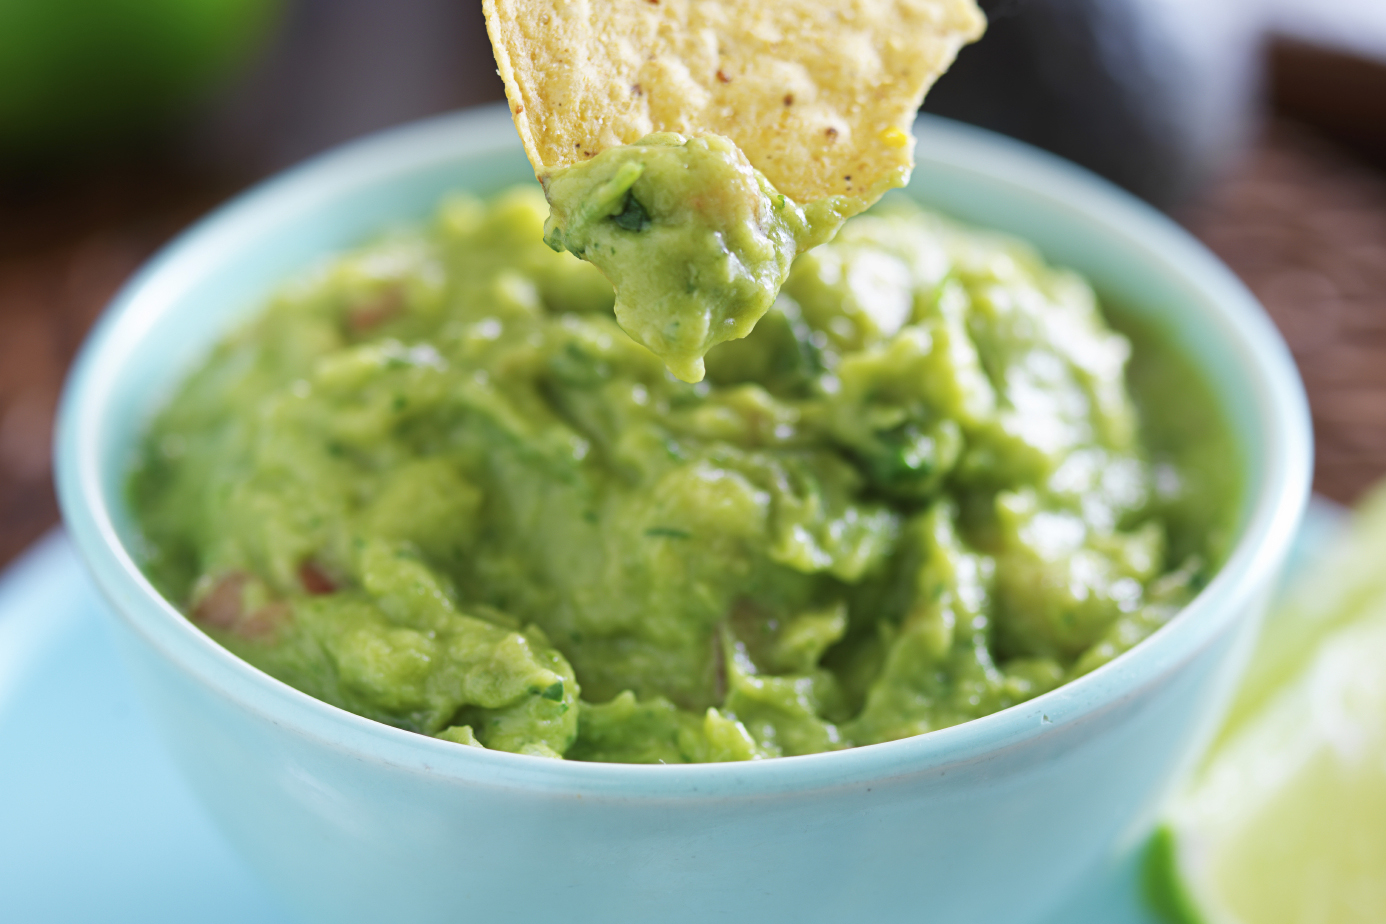 Salsa and Black Bean Guacamole Dip with Baked Lentil Chips